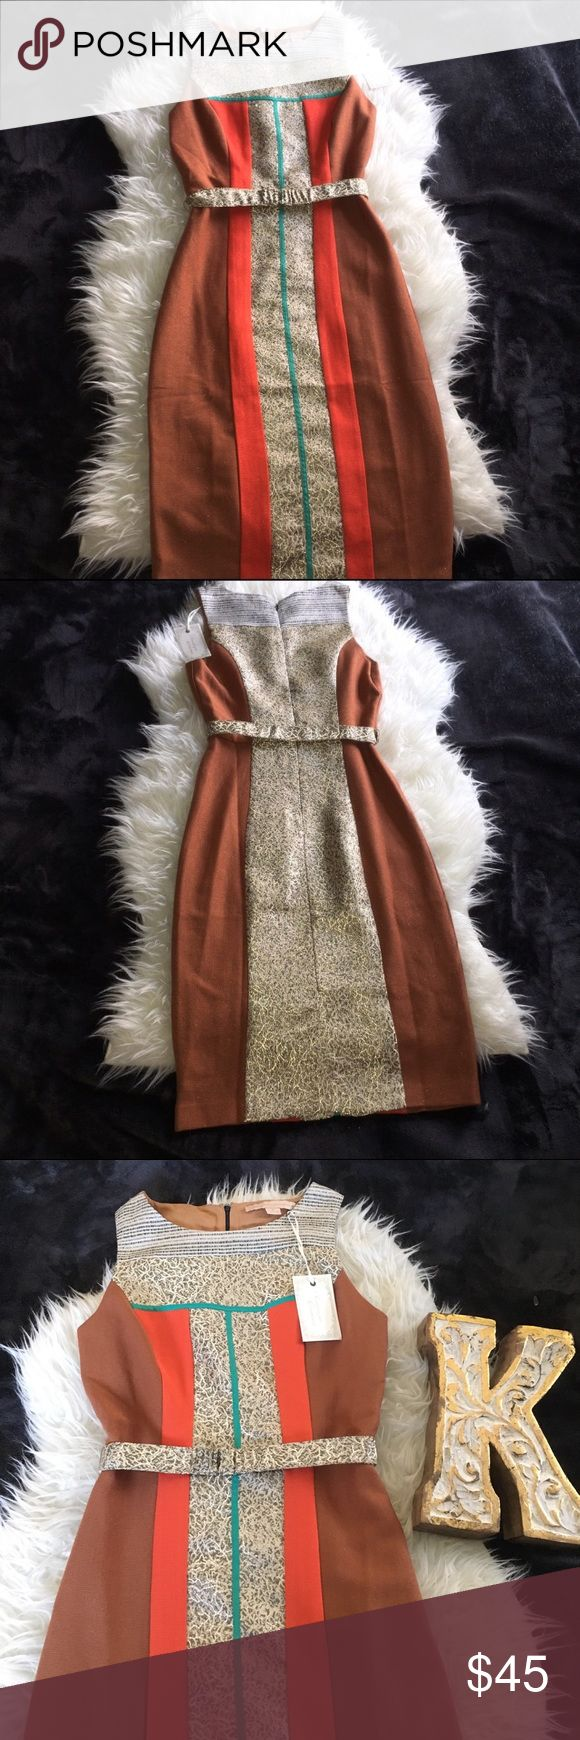 "Anthropologie Champagne & Strawberry Super cute Bodycon , Cinched belted waist super flattering, beautiful terra-cotta color with orange , real and gold detailing . Sparkly all over super elegant. Flat Lay measurement Chest: 16""       Waist: 13""   Hem: 42"" Anthropologie Dresses"